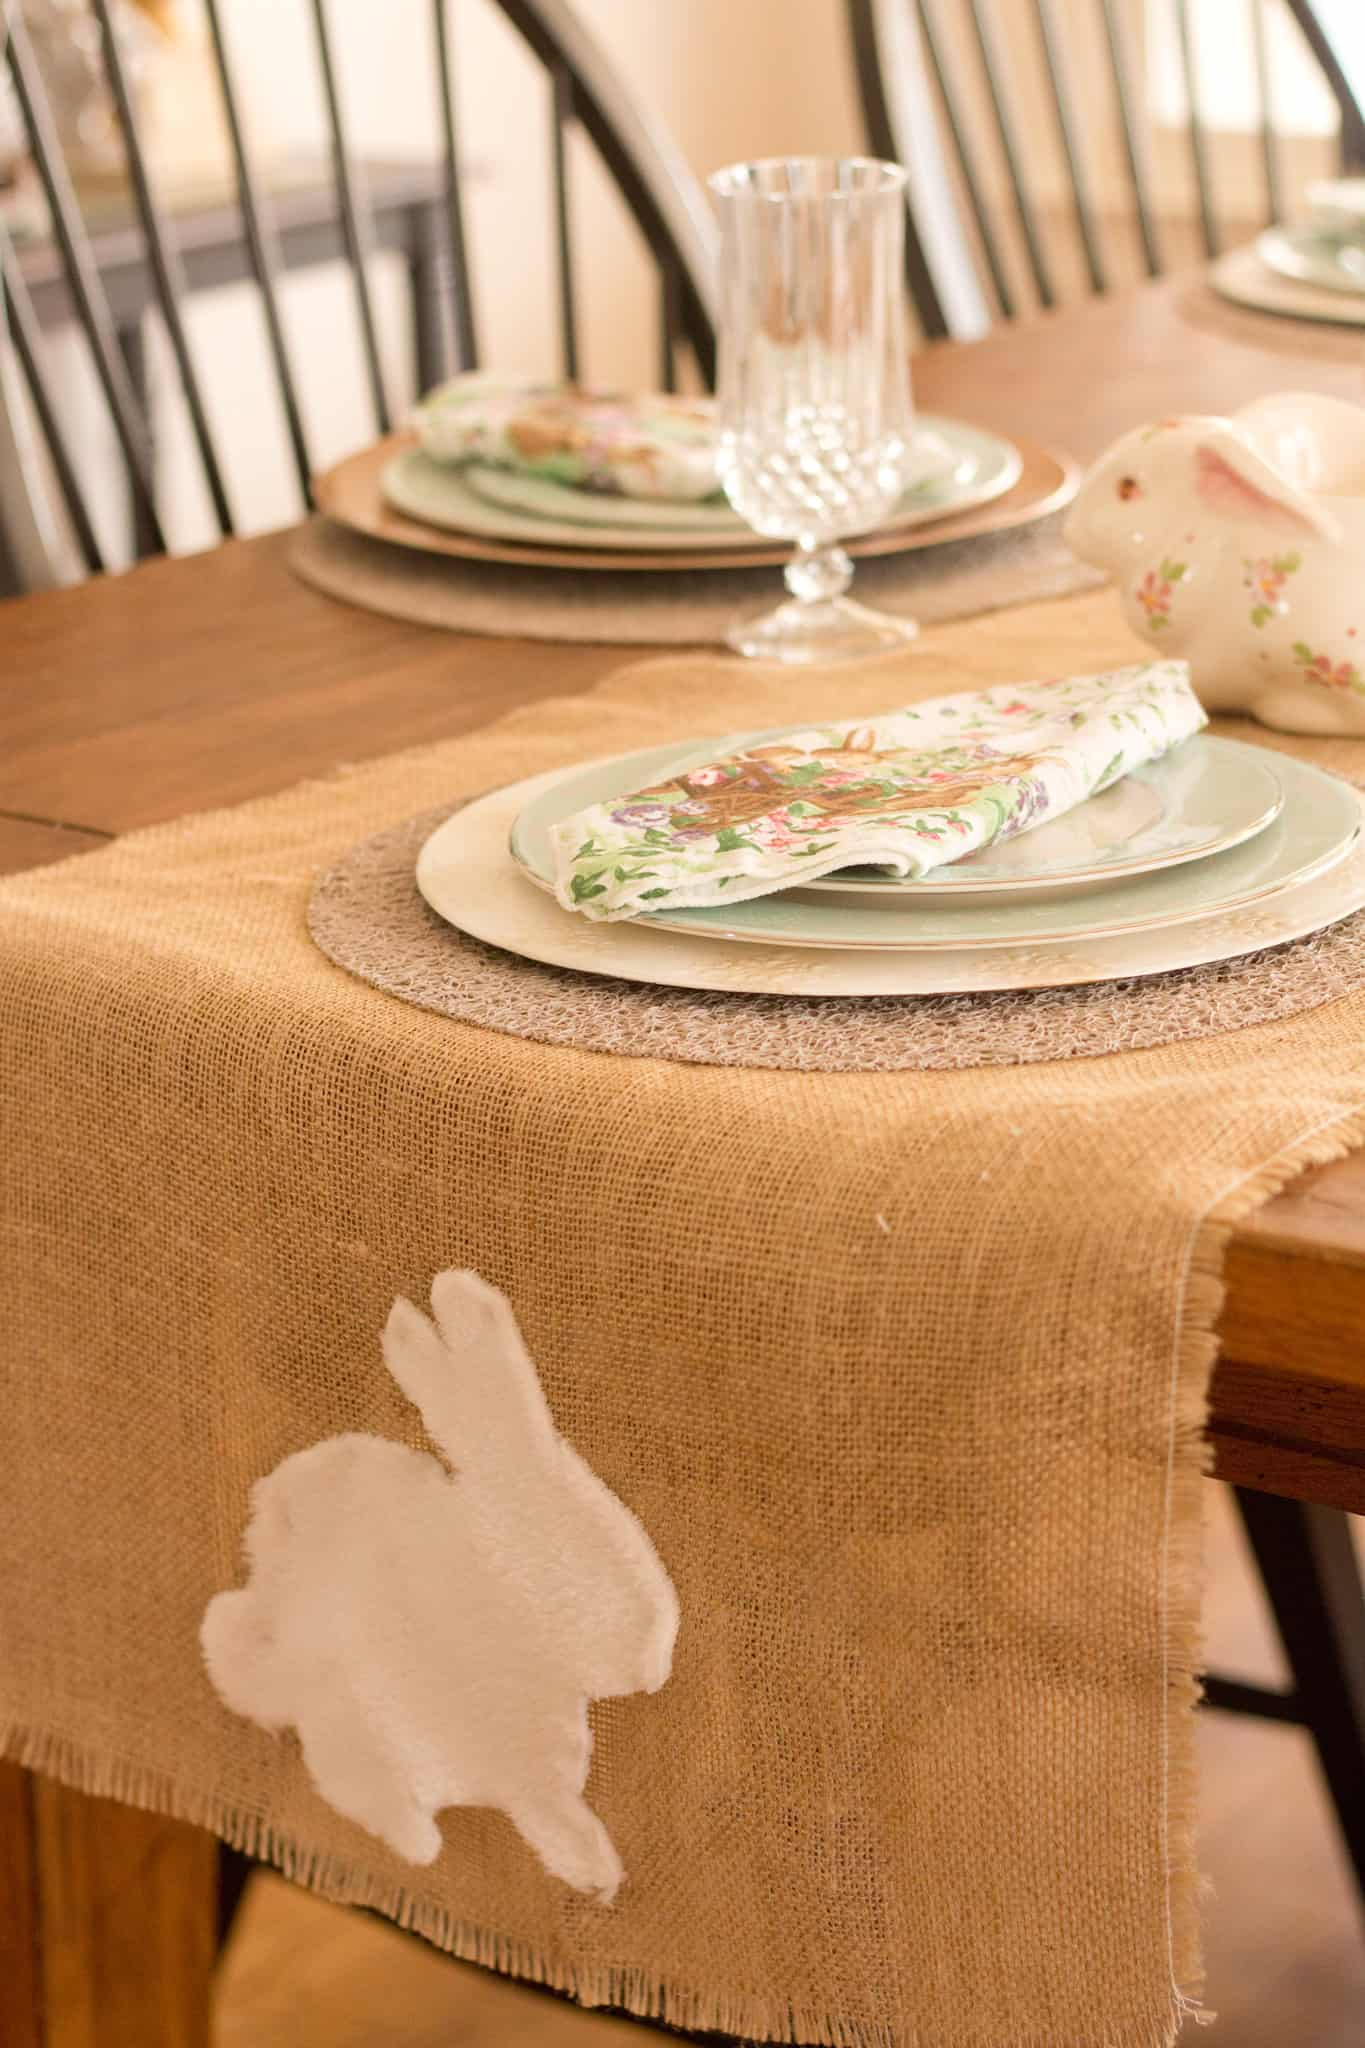 Bunny Table Runner and Thrifted Table Setting